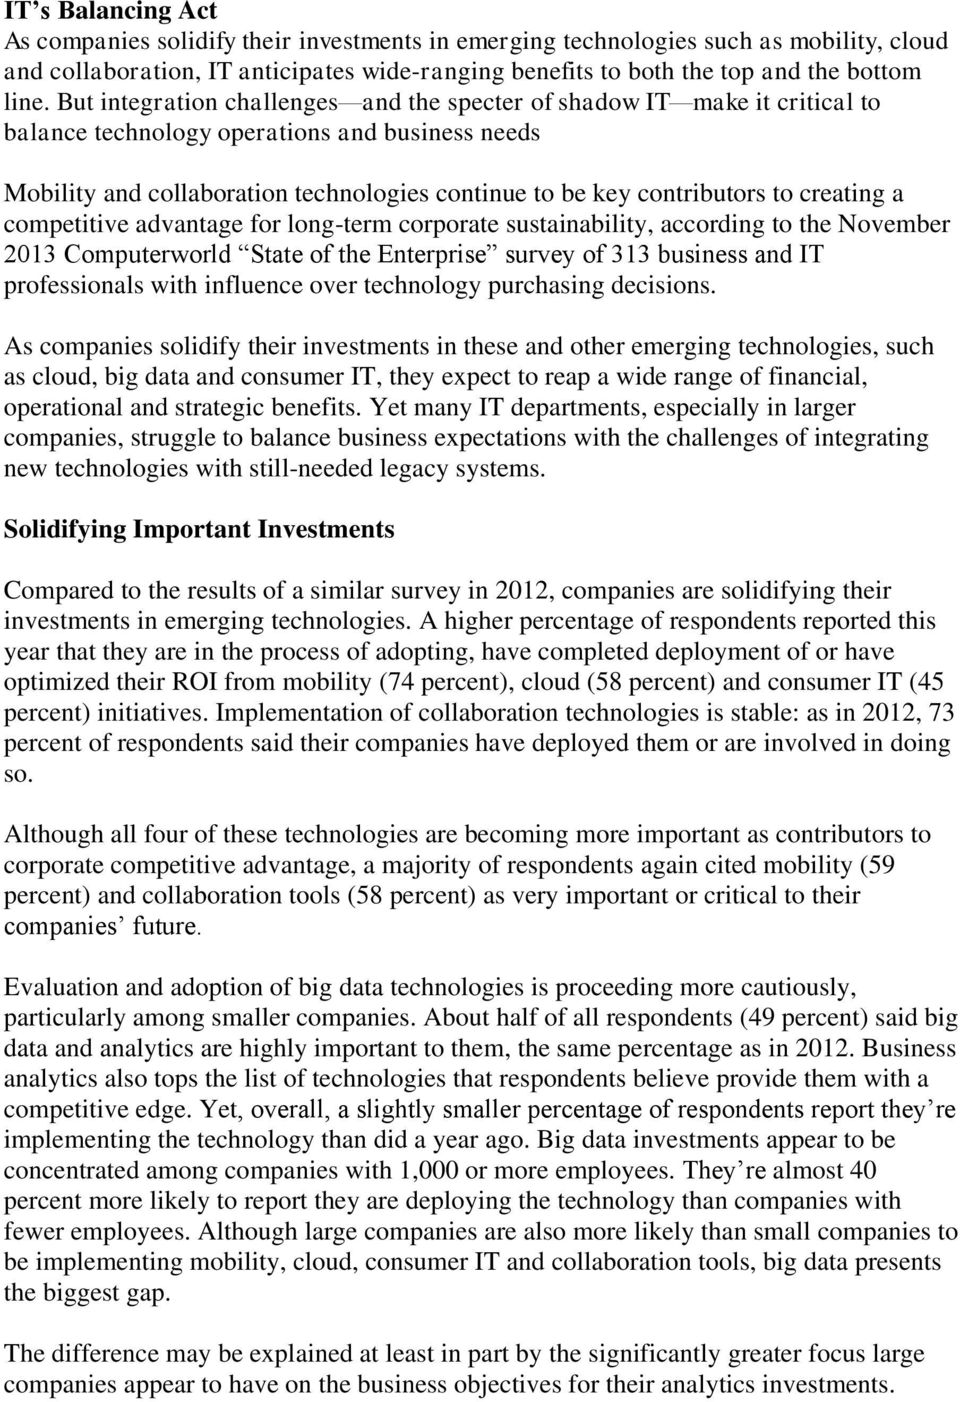 creating a competitive advantage for long-term corporate sustainability, according to the November 2013 Computerworld State of the Enterprise survey of 313 business and IT professionals with